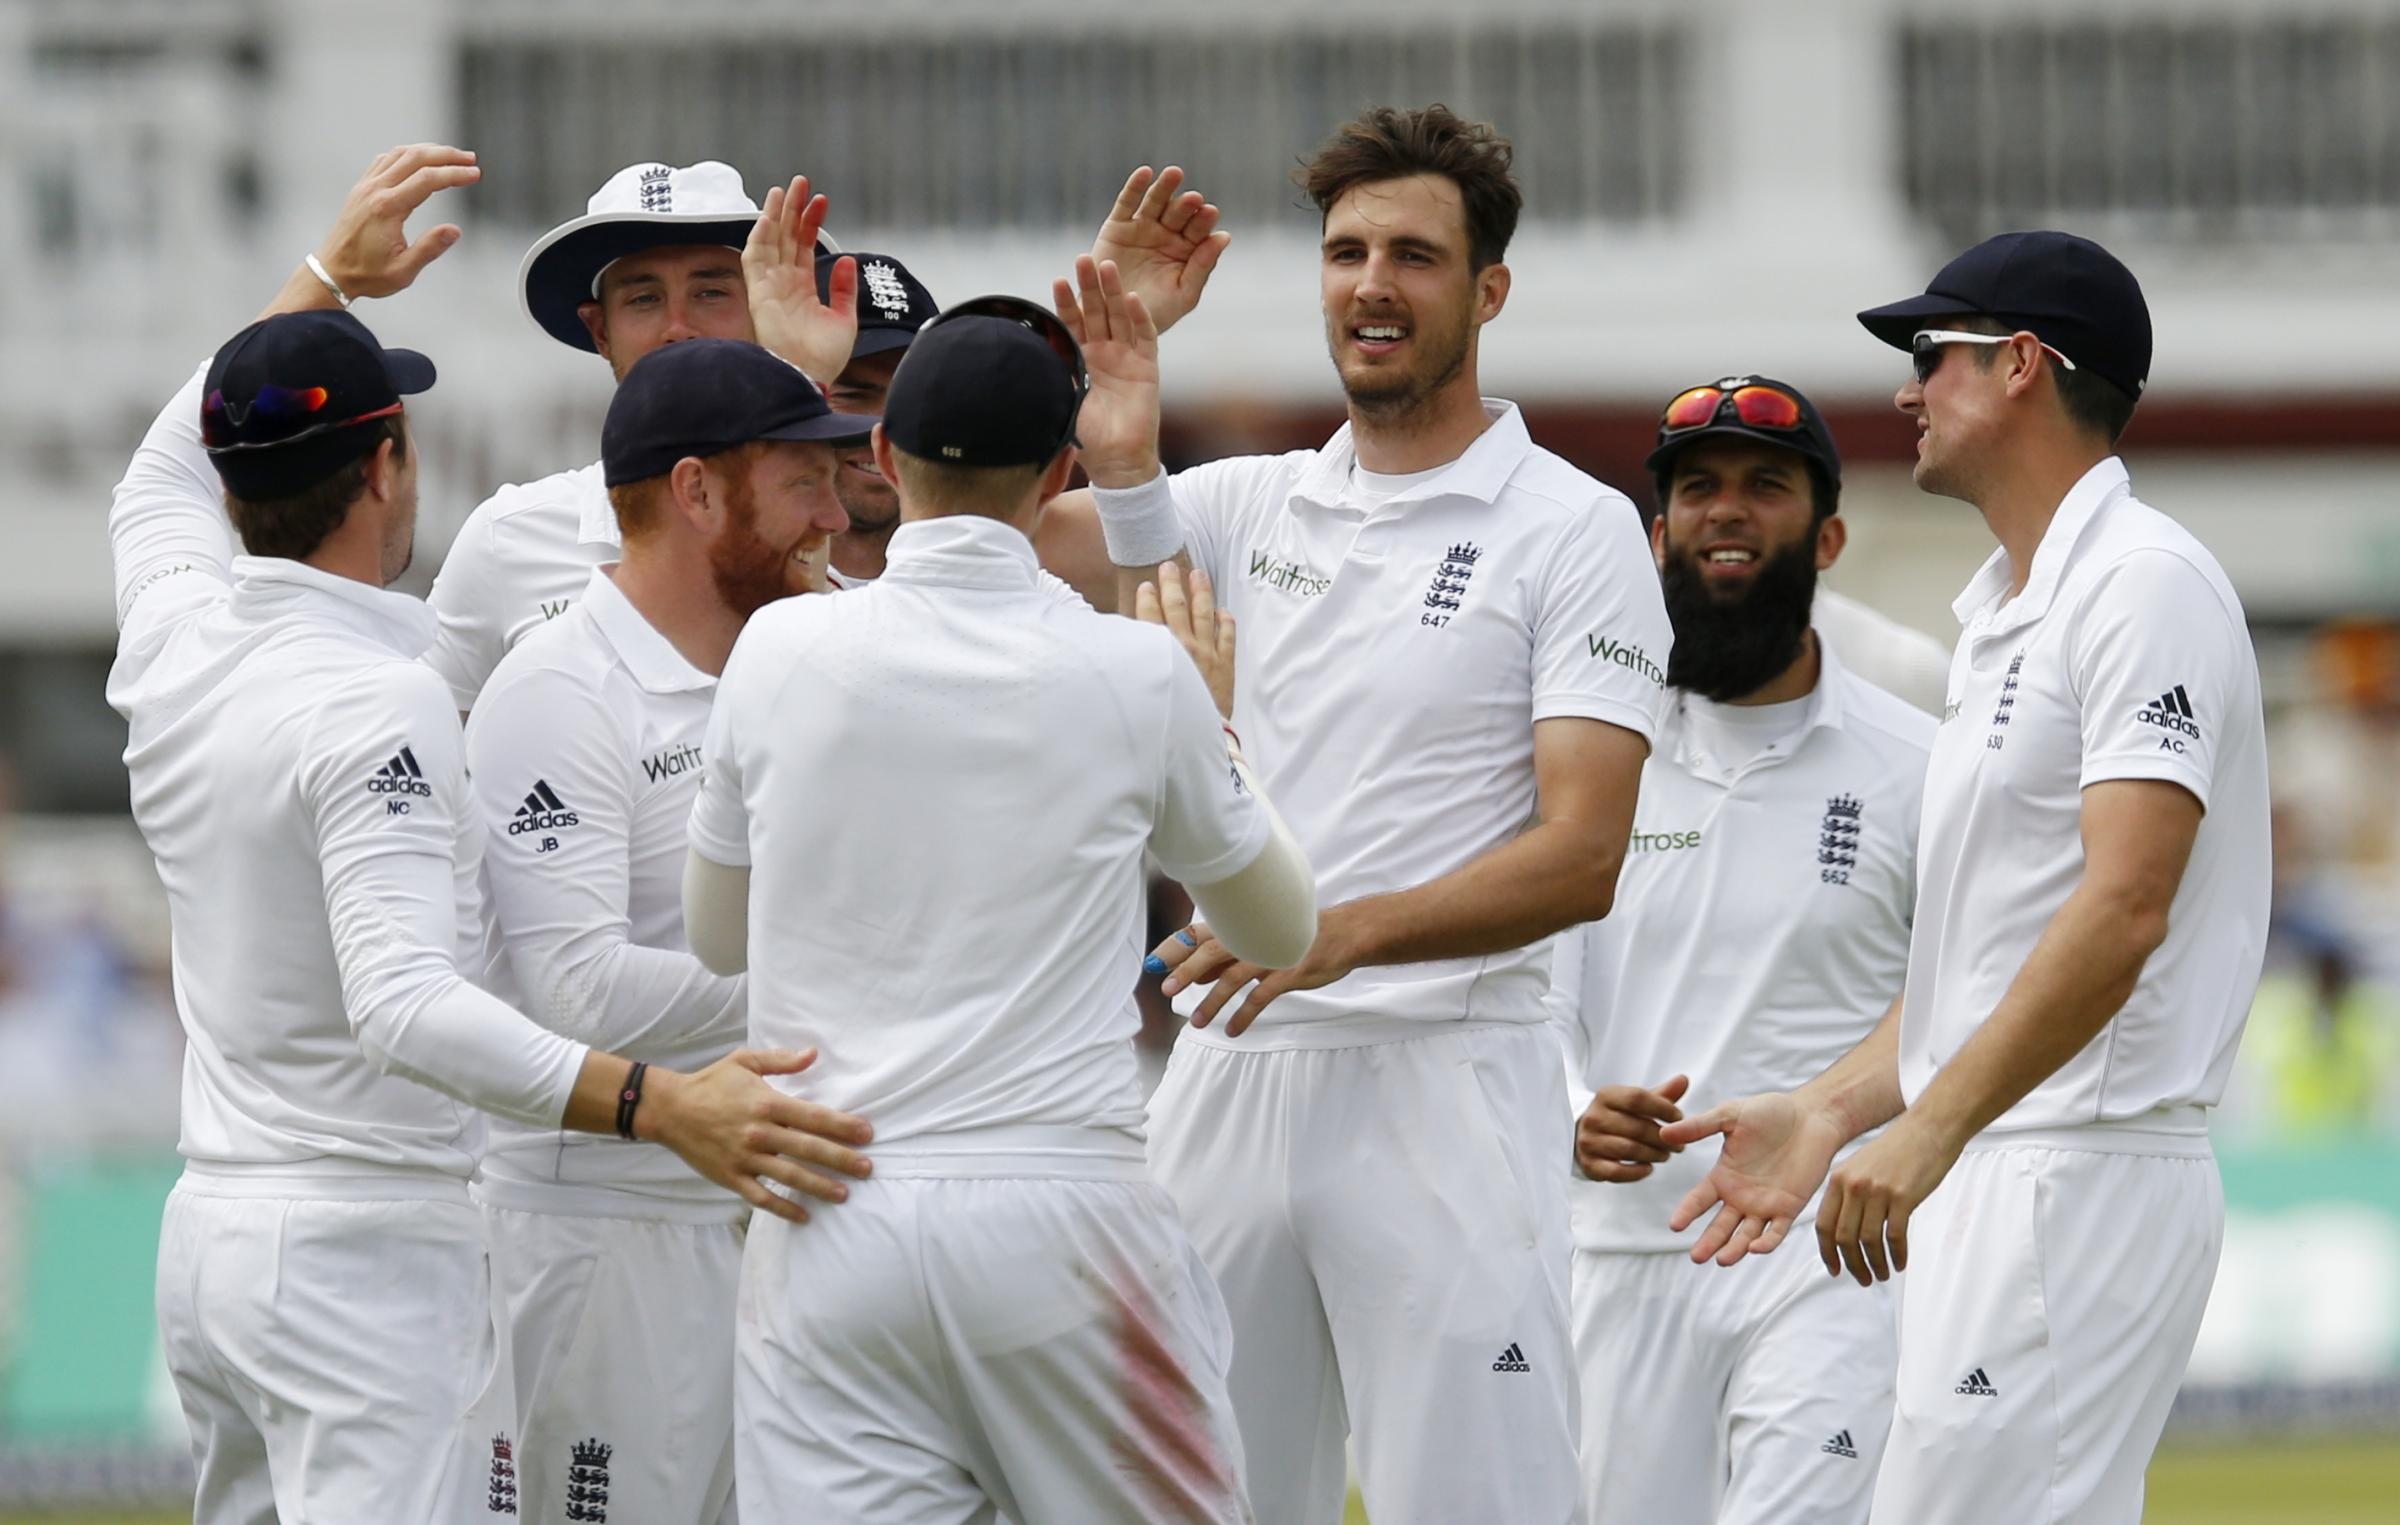 Steven Finn after taking a wicket in the final test versus Sri Lanka. Picture: Action Images